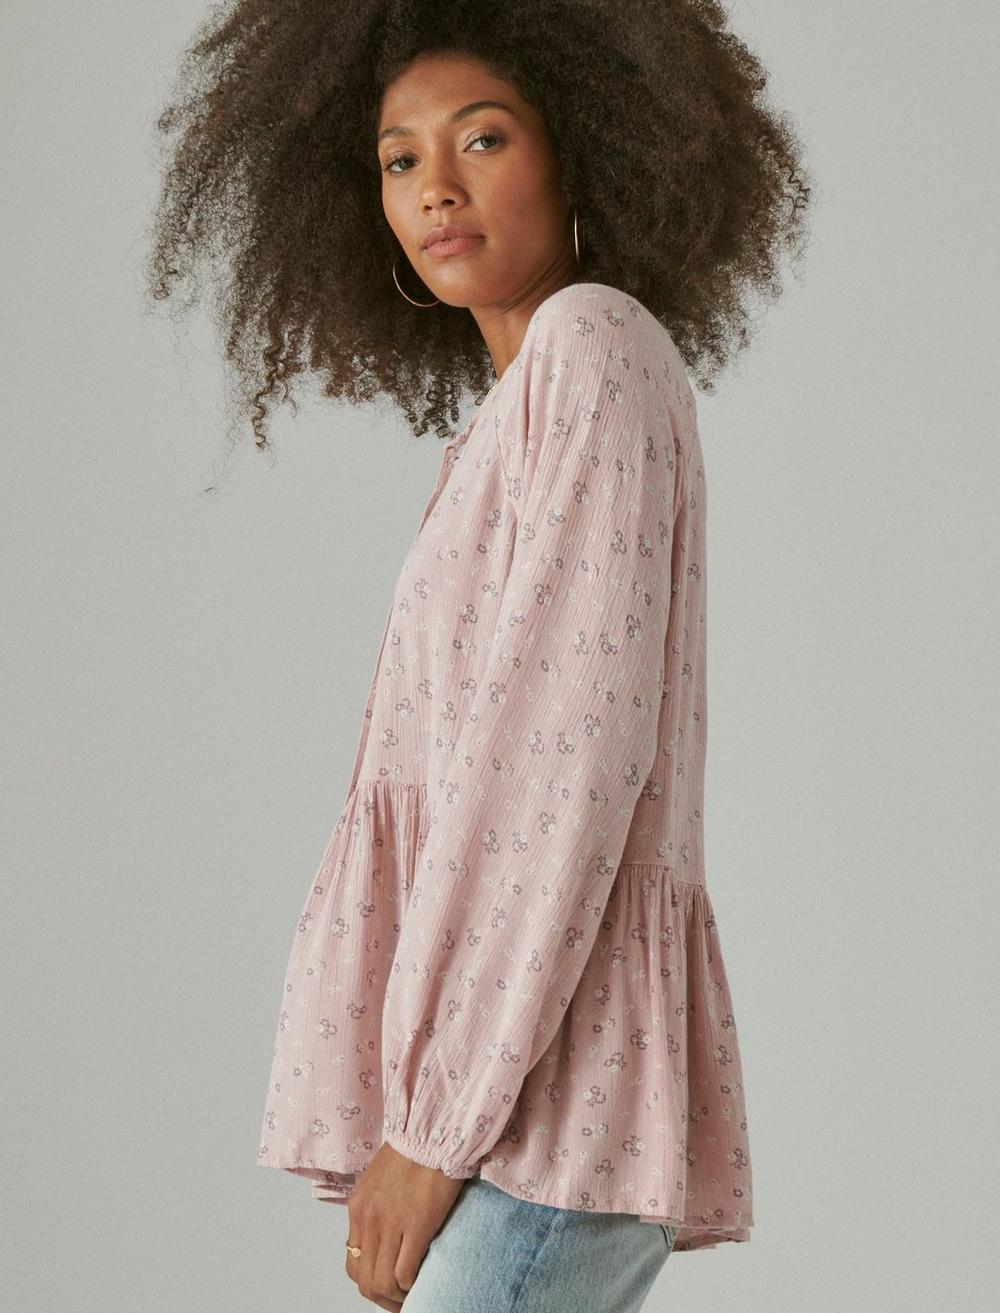 FLORAL PRINTED TUNIC, image 3